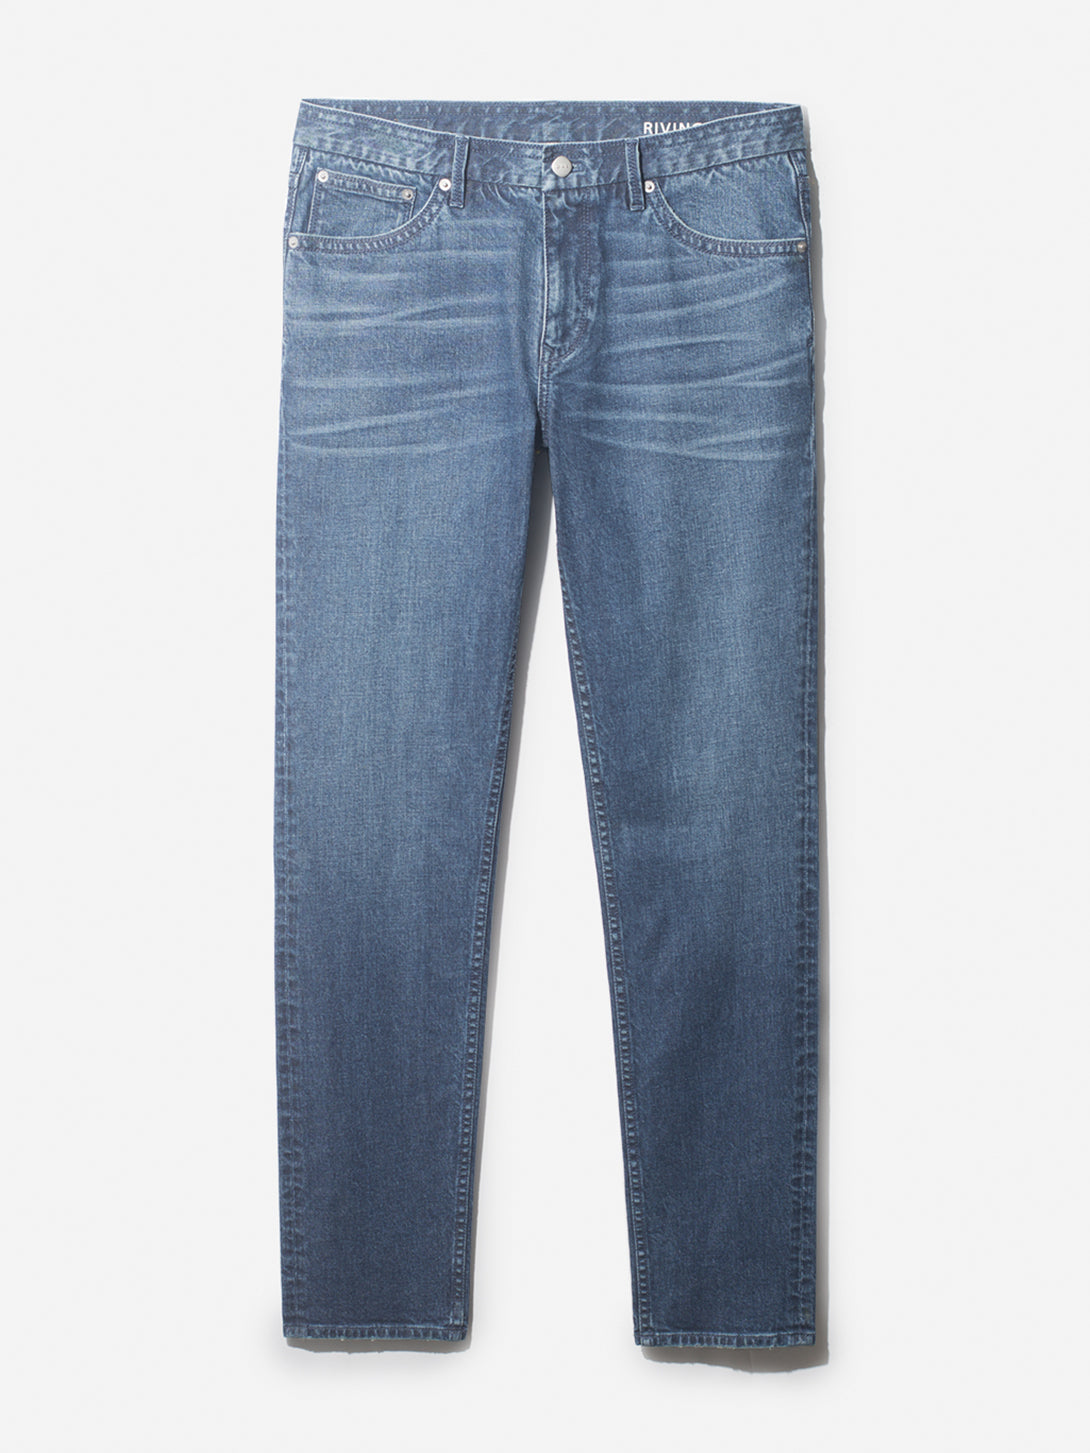 INDIGO DENIM RIVINGTONS MID WASH DENIM